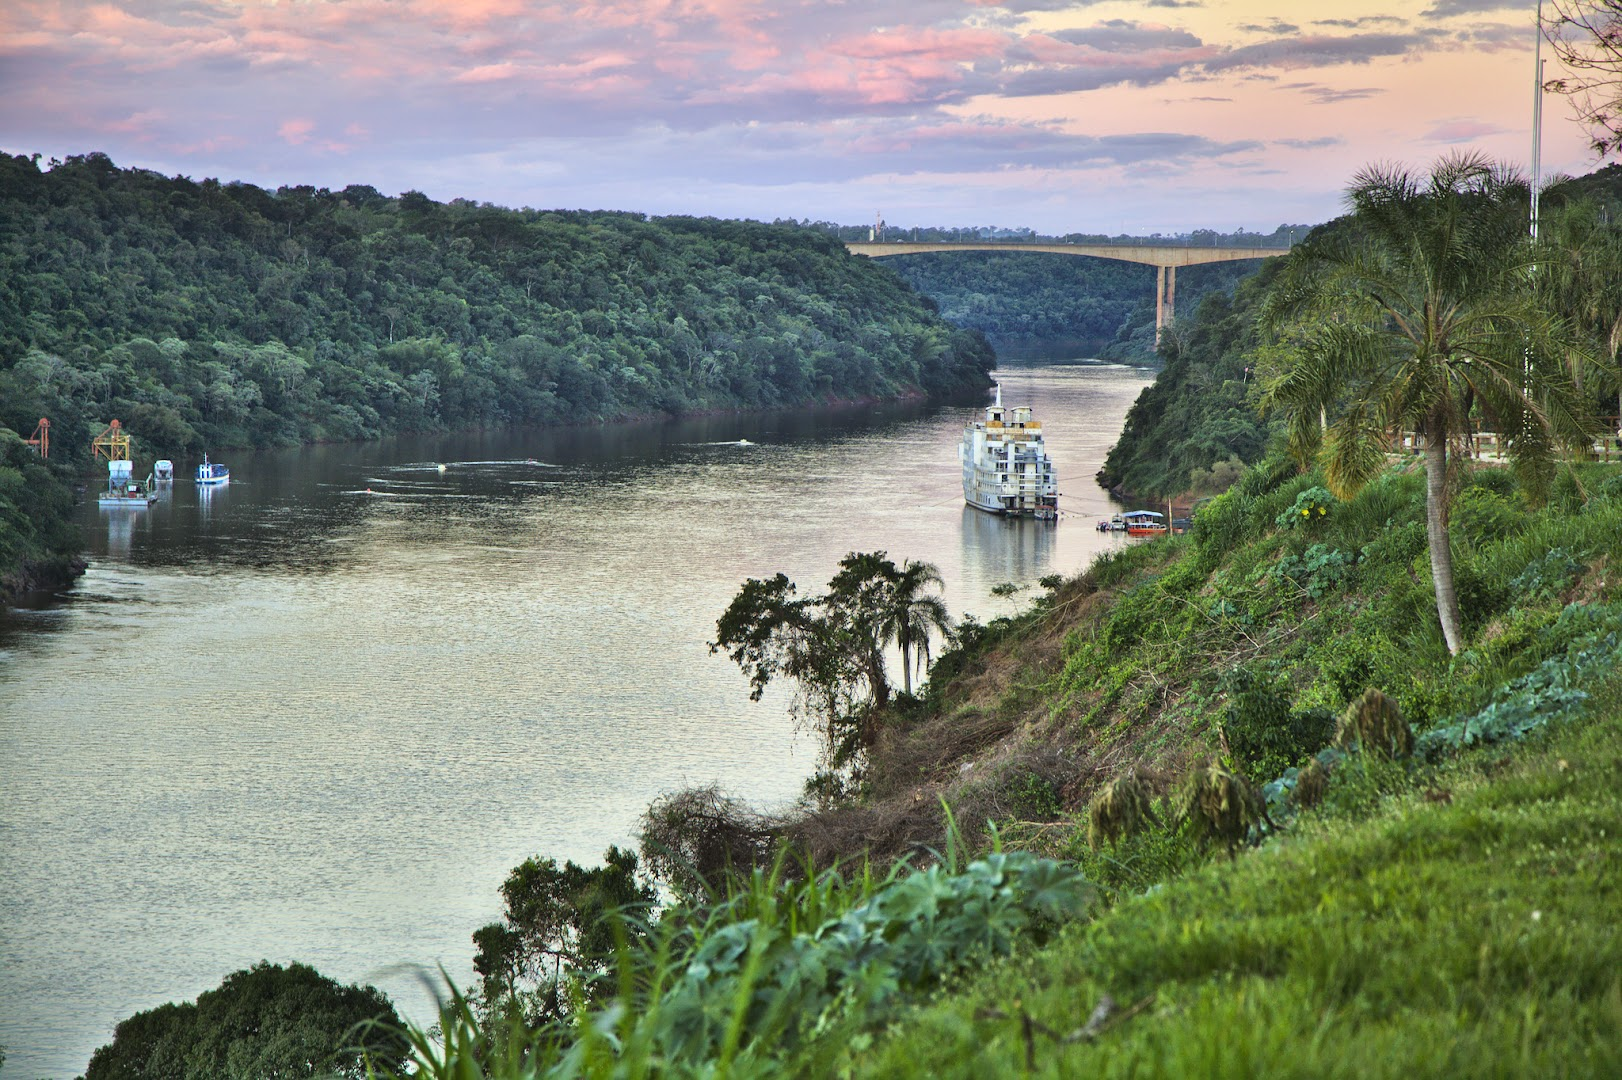 Border between Brazil and Argentina